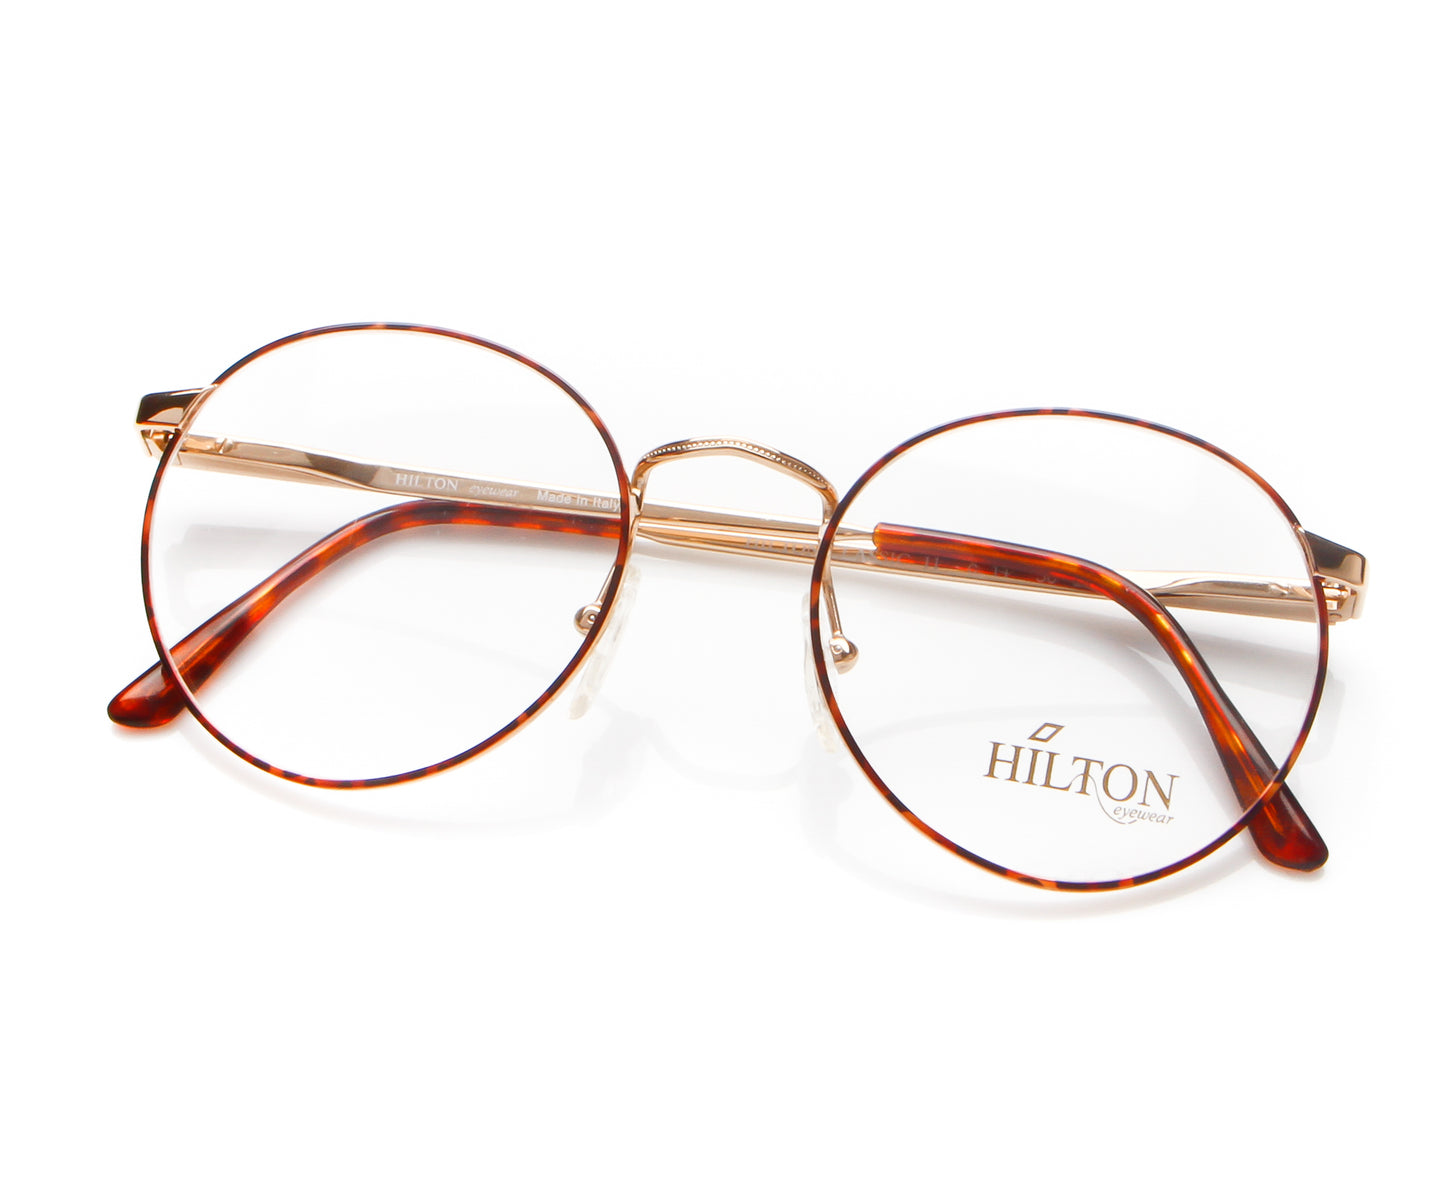 Vintage Hilton Classic 11 11 Thumb, Hilton , glasses frames, eyeglasses online, eyeglass frames, mens glasses, womens glasses, buy glasses online, designer eyeglasses, vintage sunglasses, retro sunglasses, vintage glasses, sunglass, eyeglass, glasses, lens, vintage frames company, vf